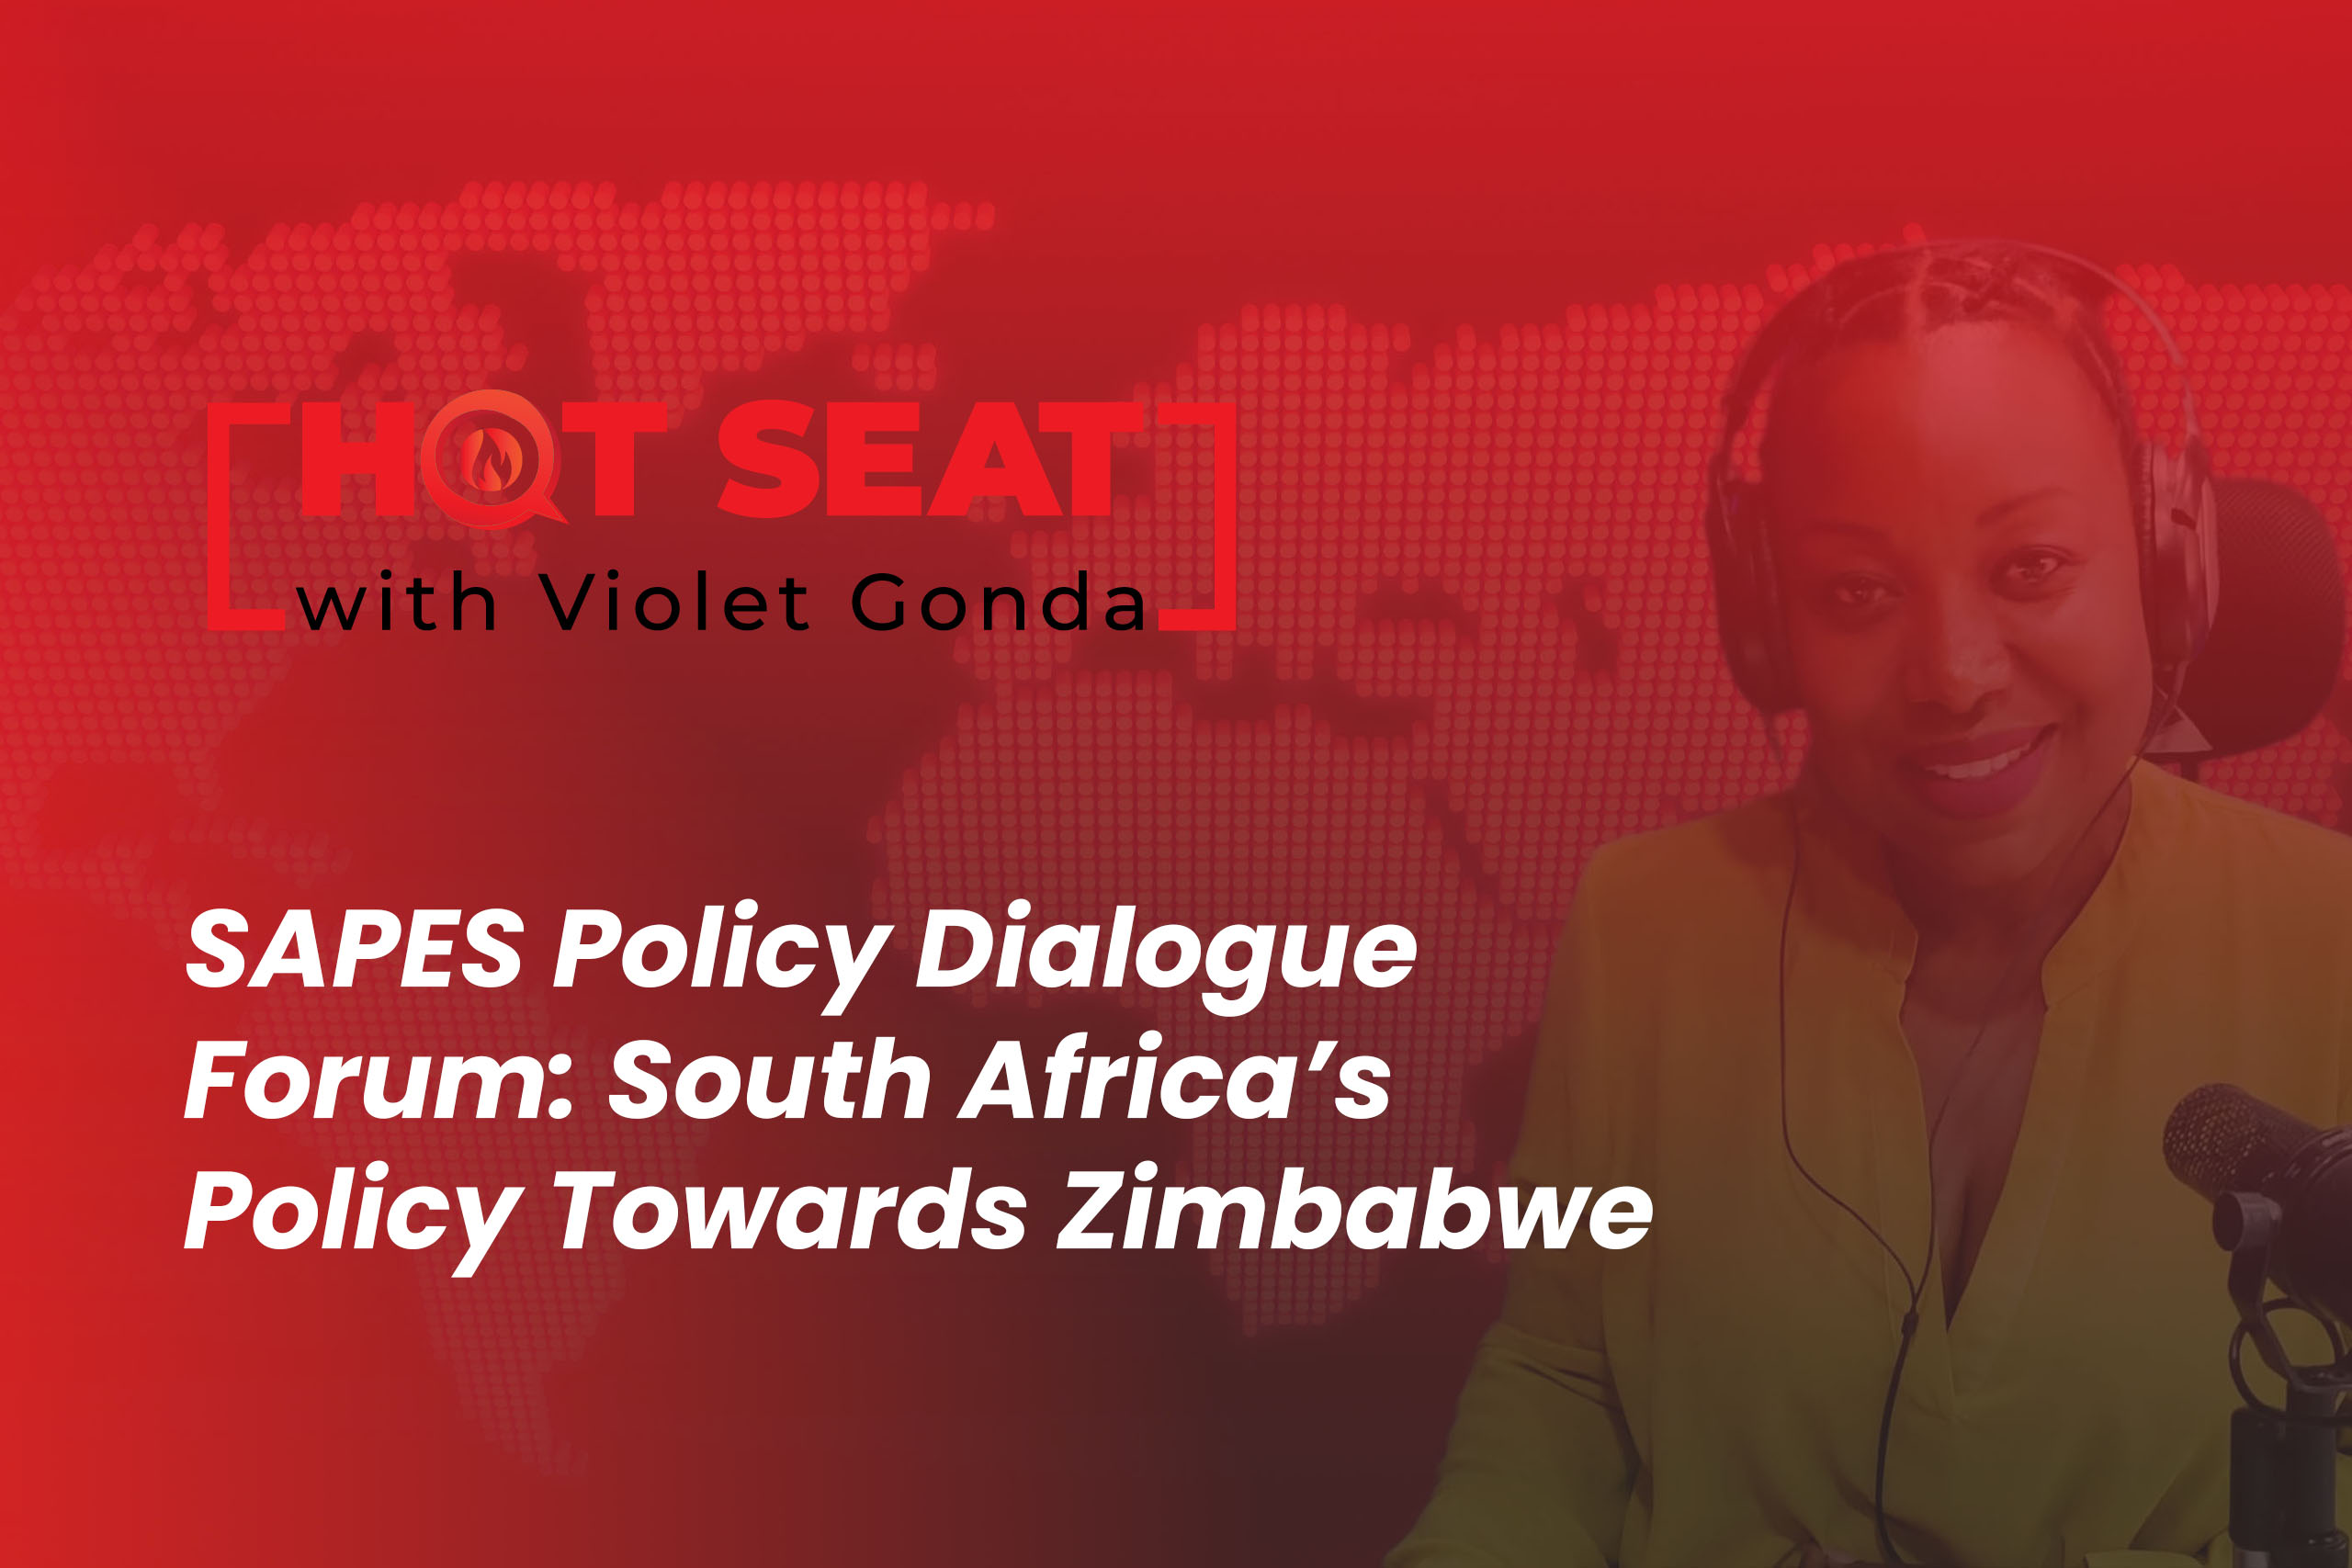 SAPES Policy Dialogue Forum: South Africa's Policy Towards Zimbabwe